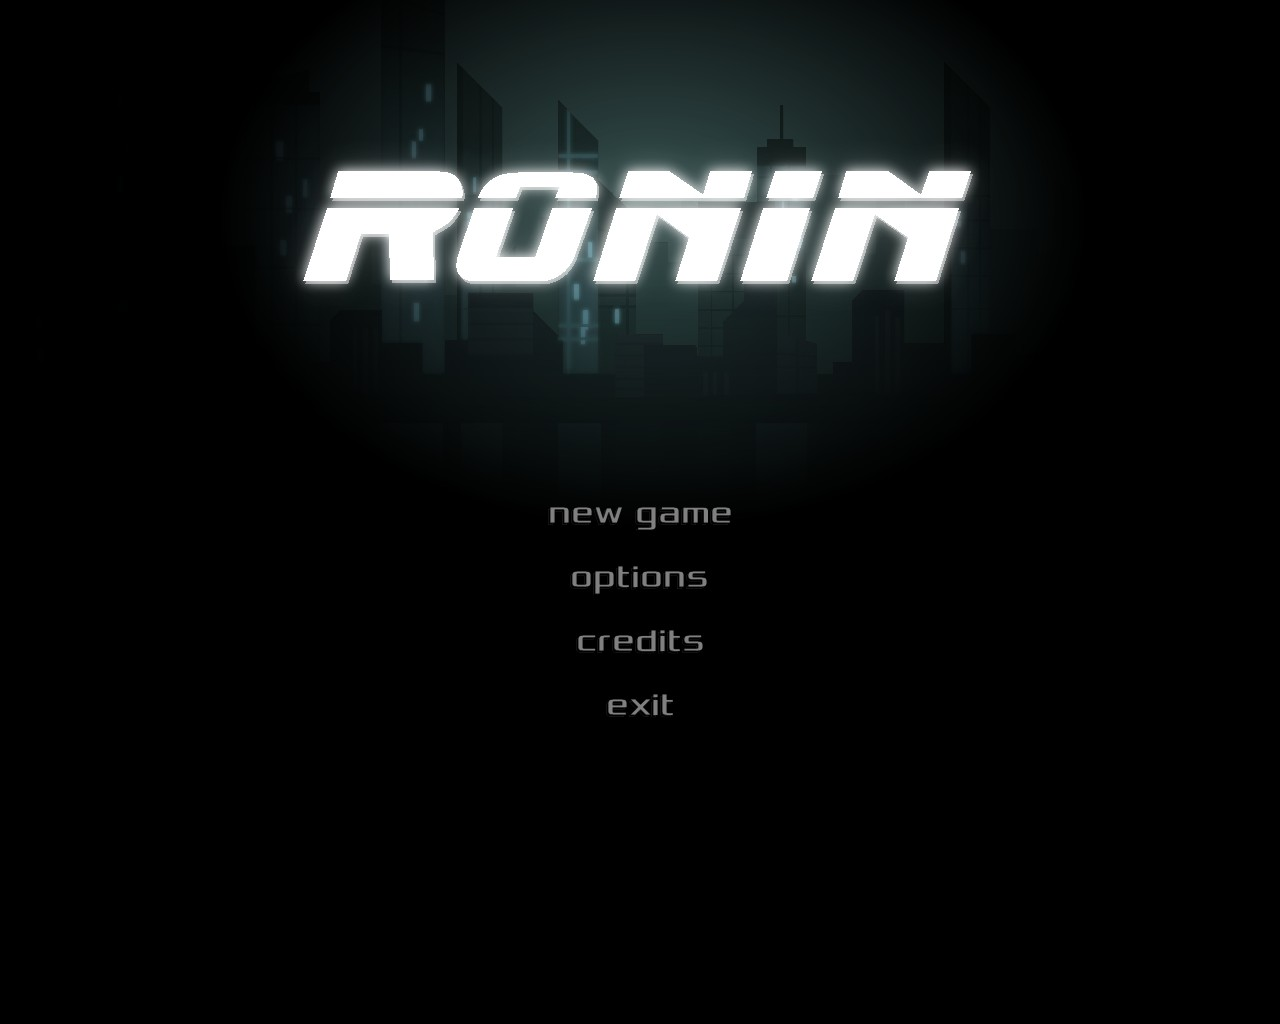 Ronin, like the character from World Warcraft.